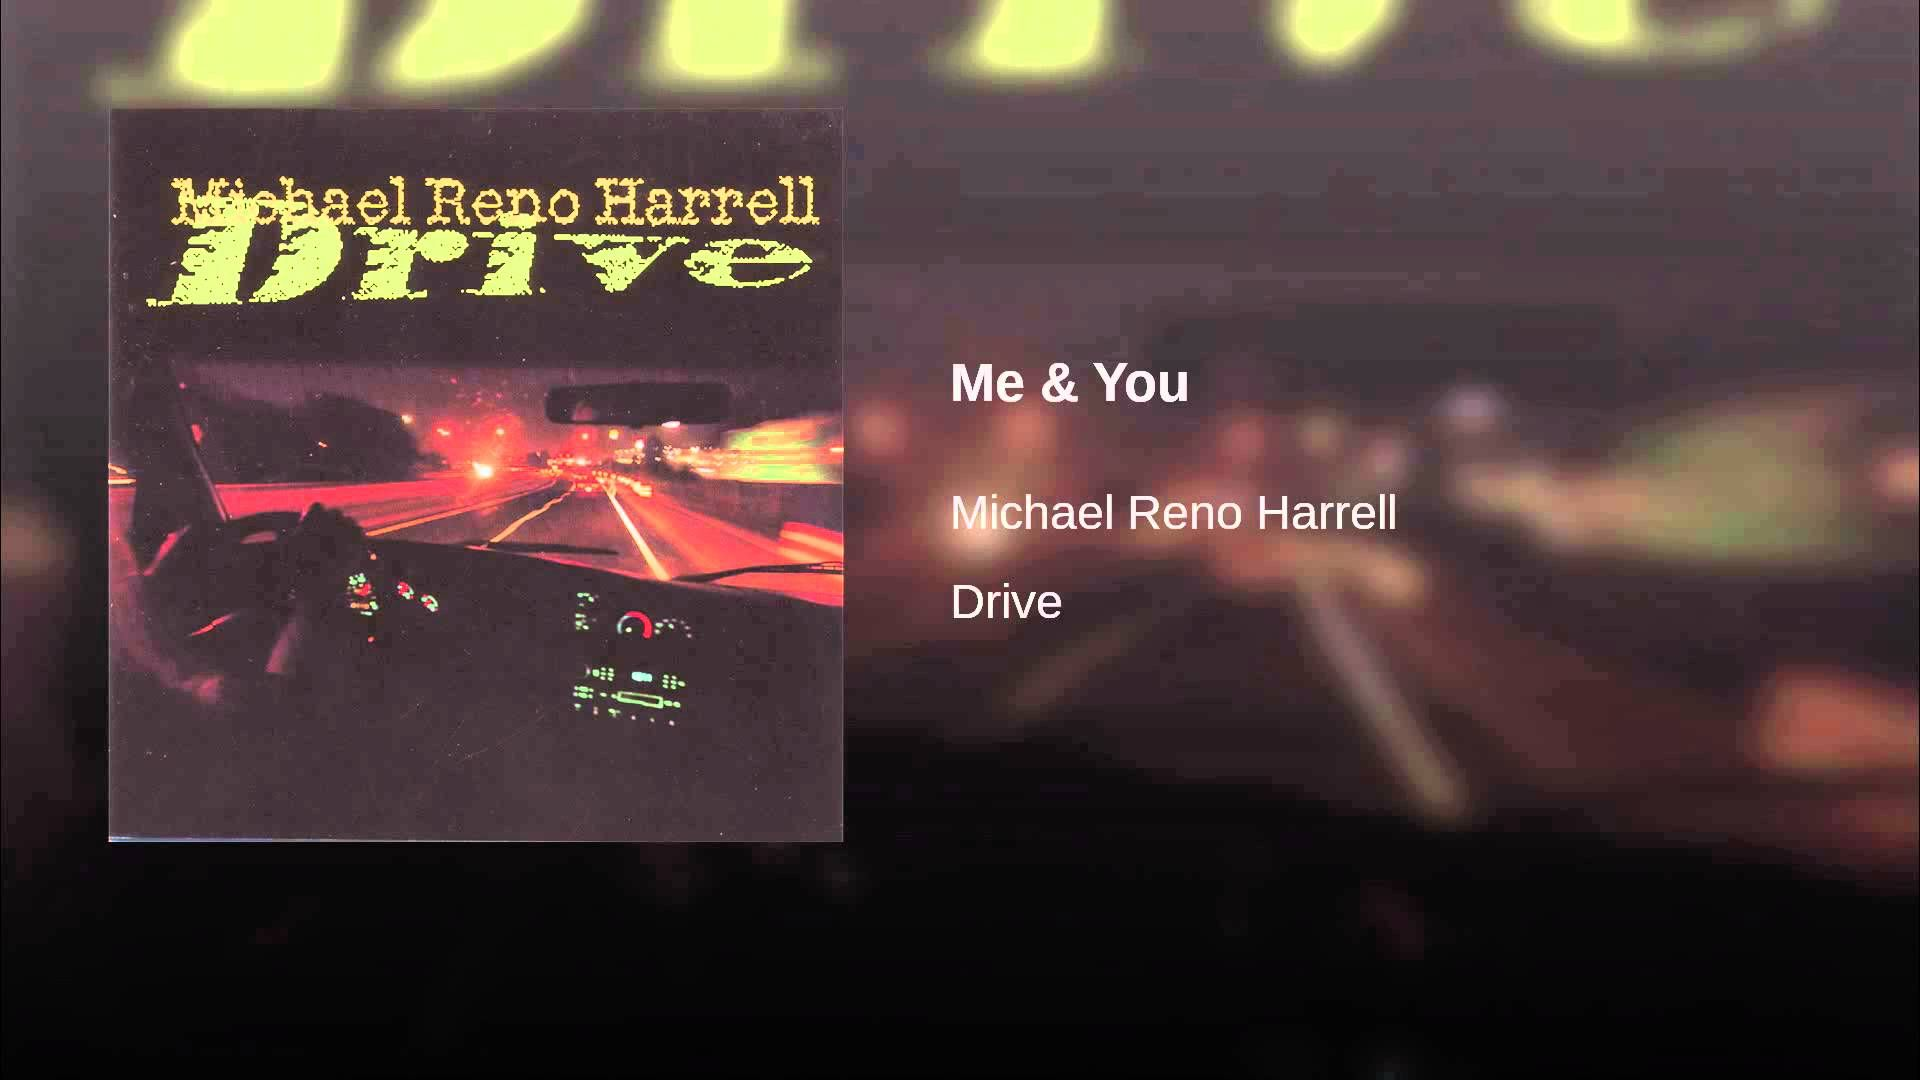 Me you indeed a true classic written by a great